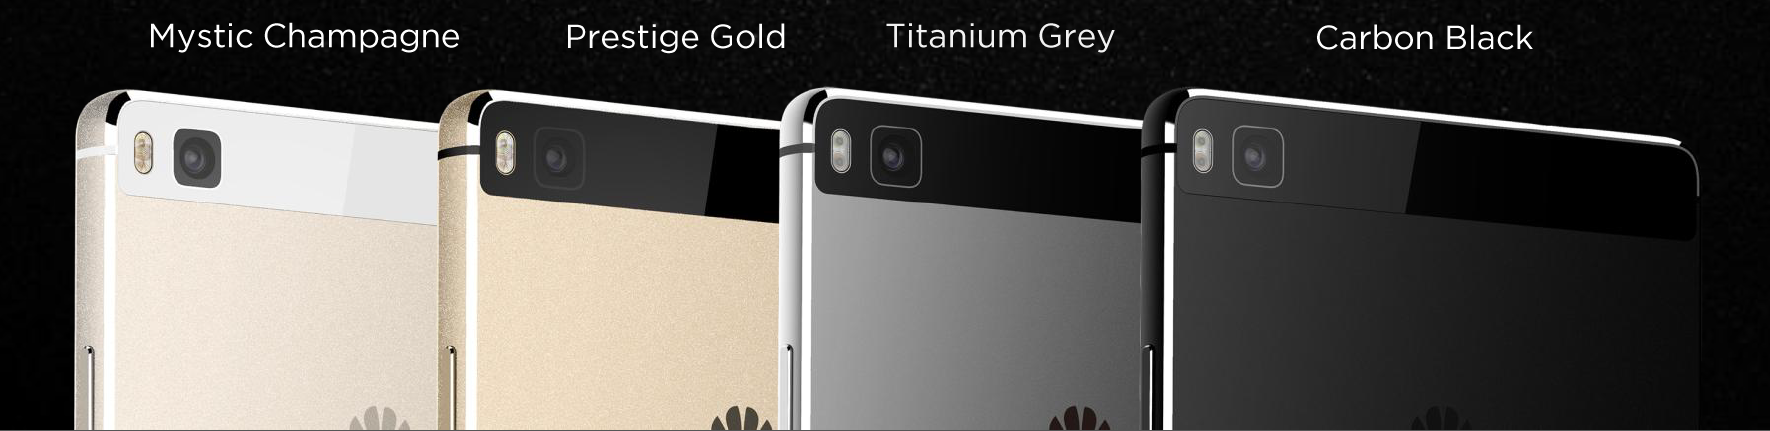 huawei p8 colors. the p8 is available in two variants at each price point: 499\u20ac for either 16gb mystic champagne or prestige gold versions, 599\u20ac 64gb titanium huawei colors